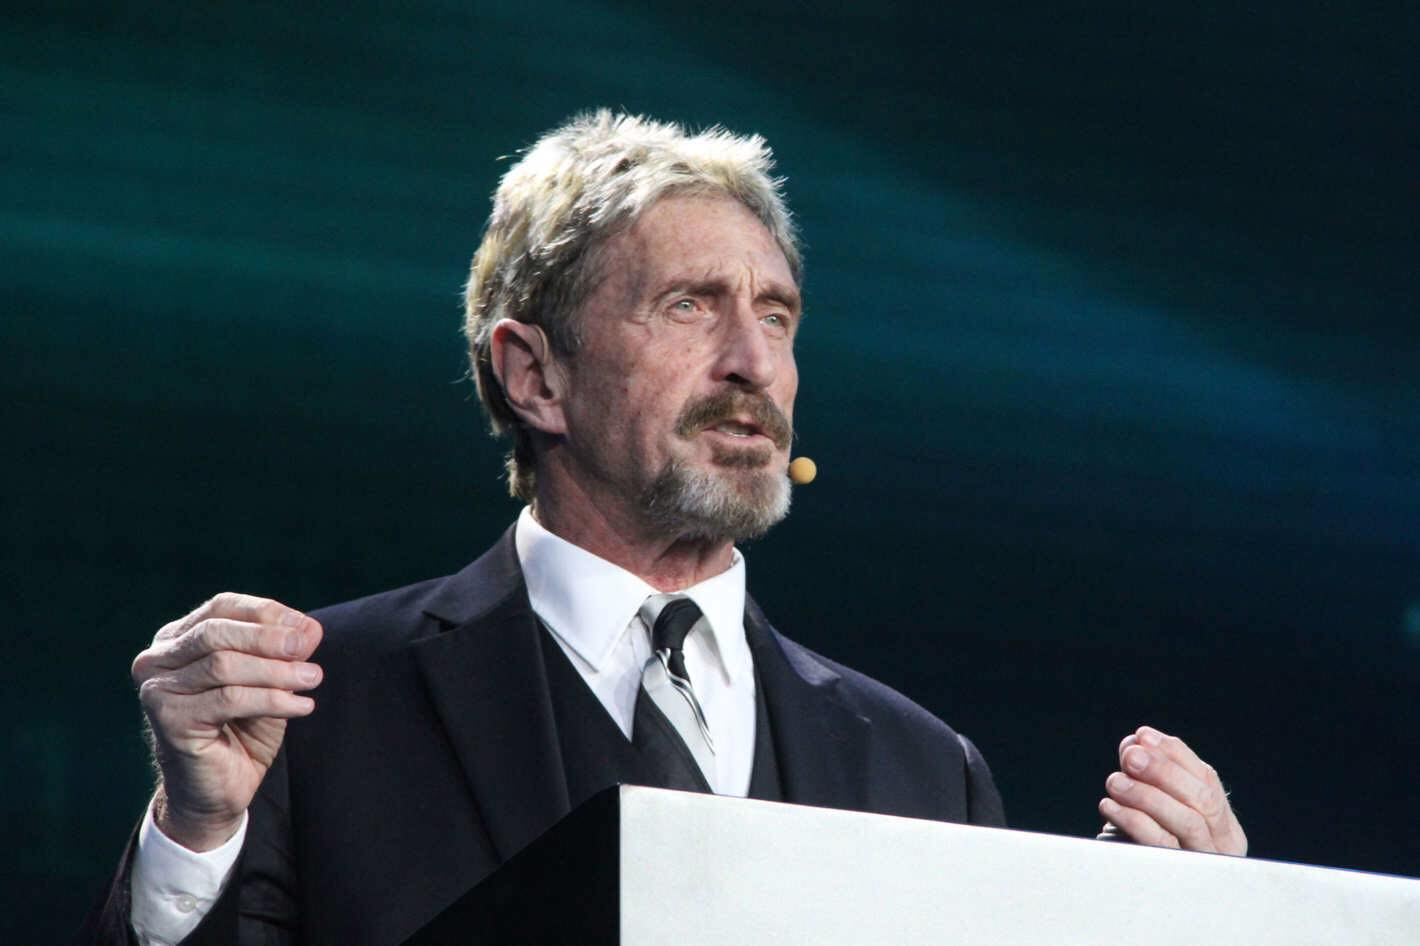 John McAfee Will Run for President of the United States in 2020 13